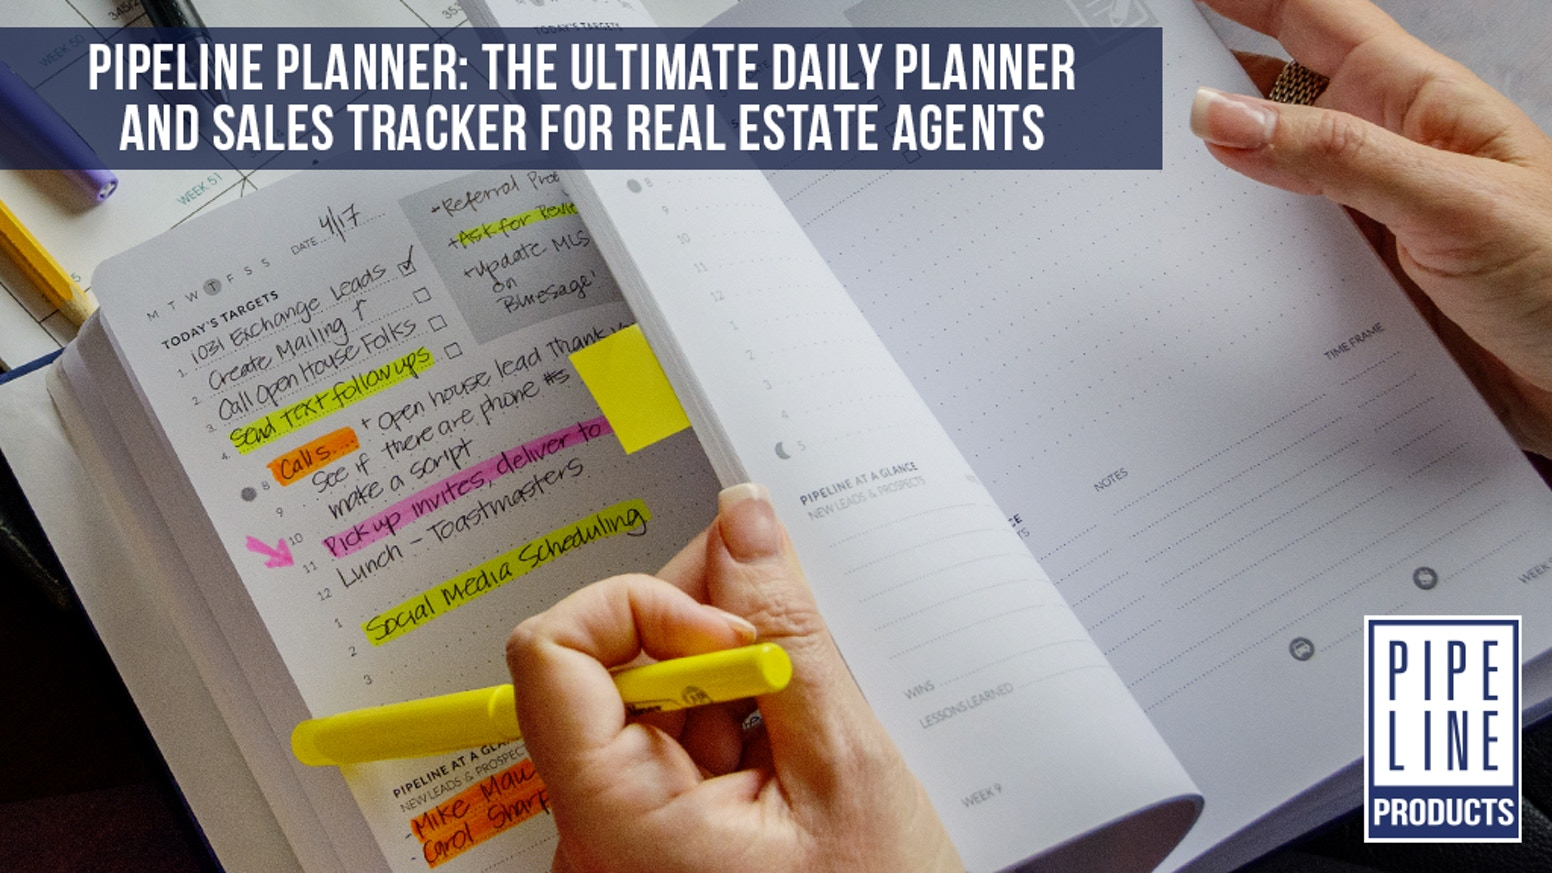 A real estate agent's to-do list, goal setting guide, journal, expense tracker, and pipeline manager all in one planner.